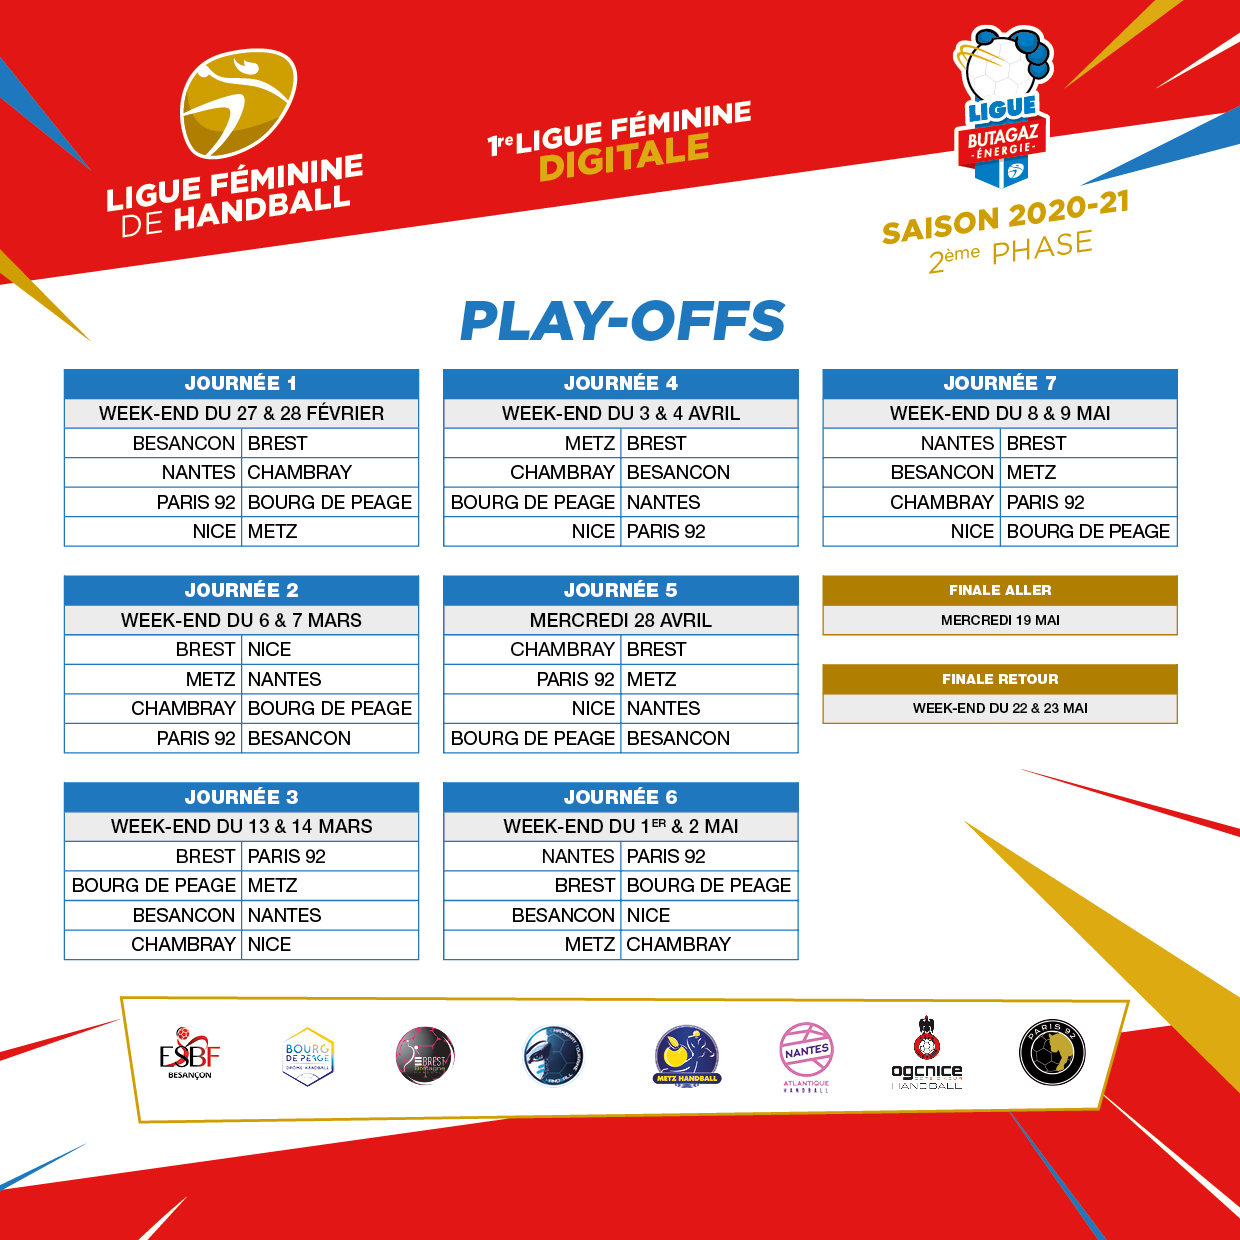 LFH_CALENDRIER_PLAY-OFFS_2020-21_RS